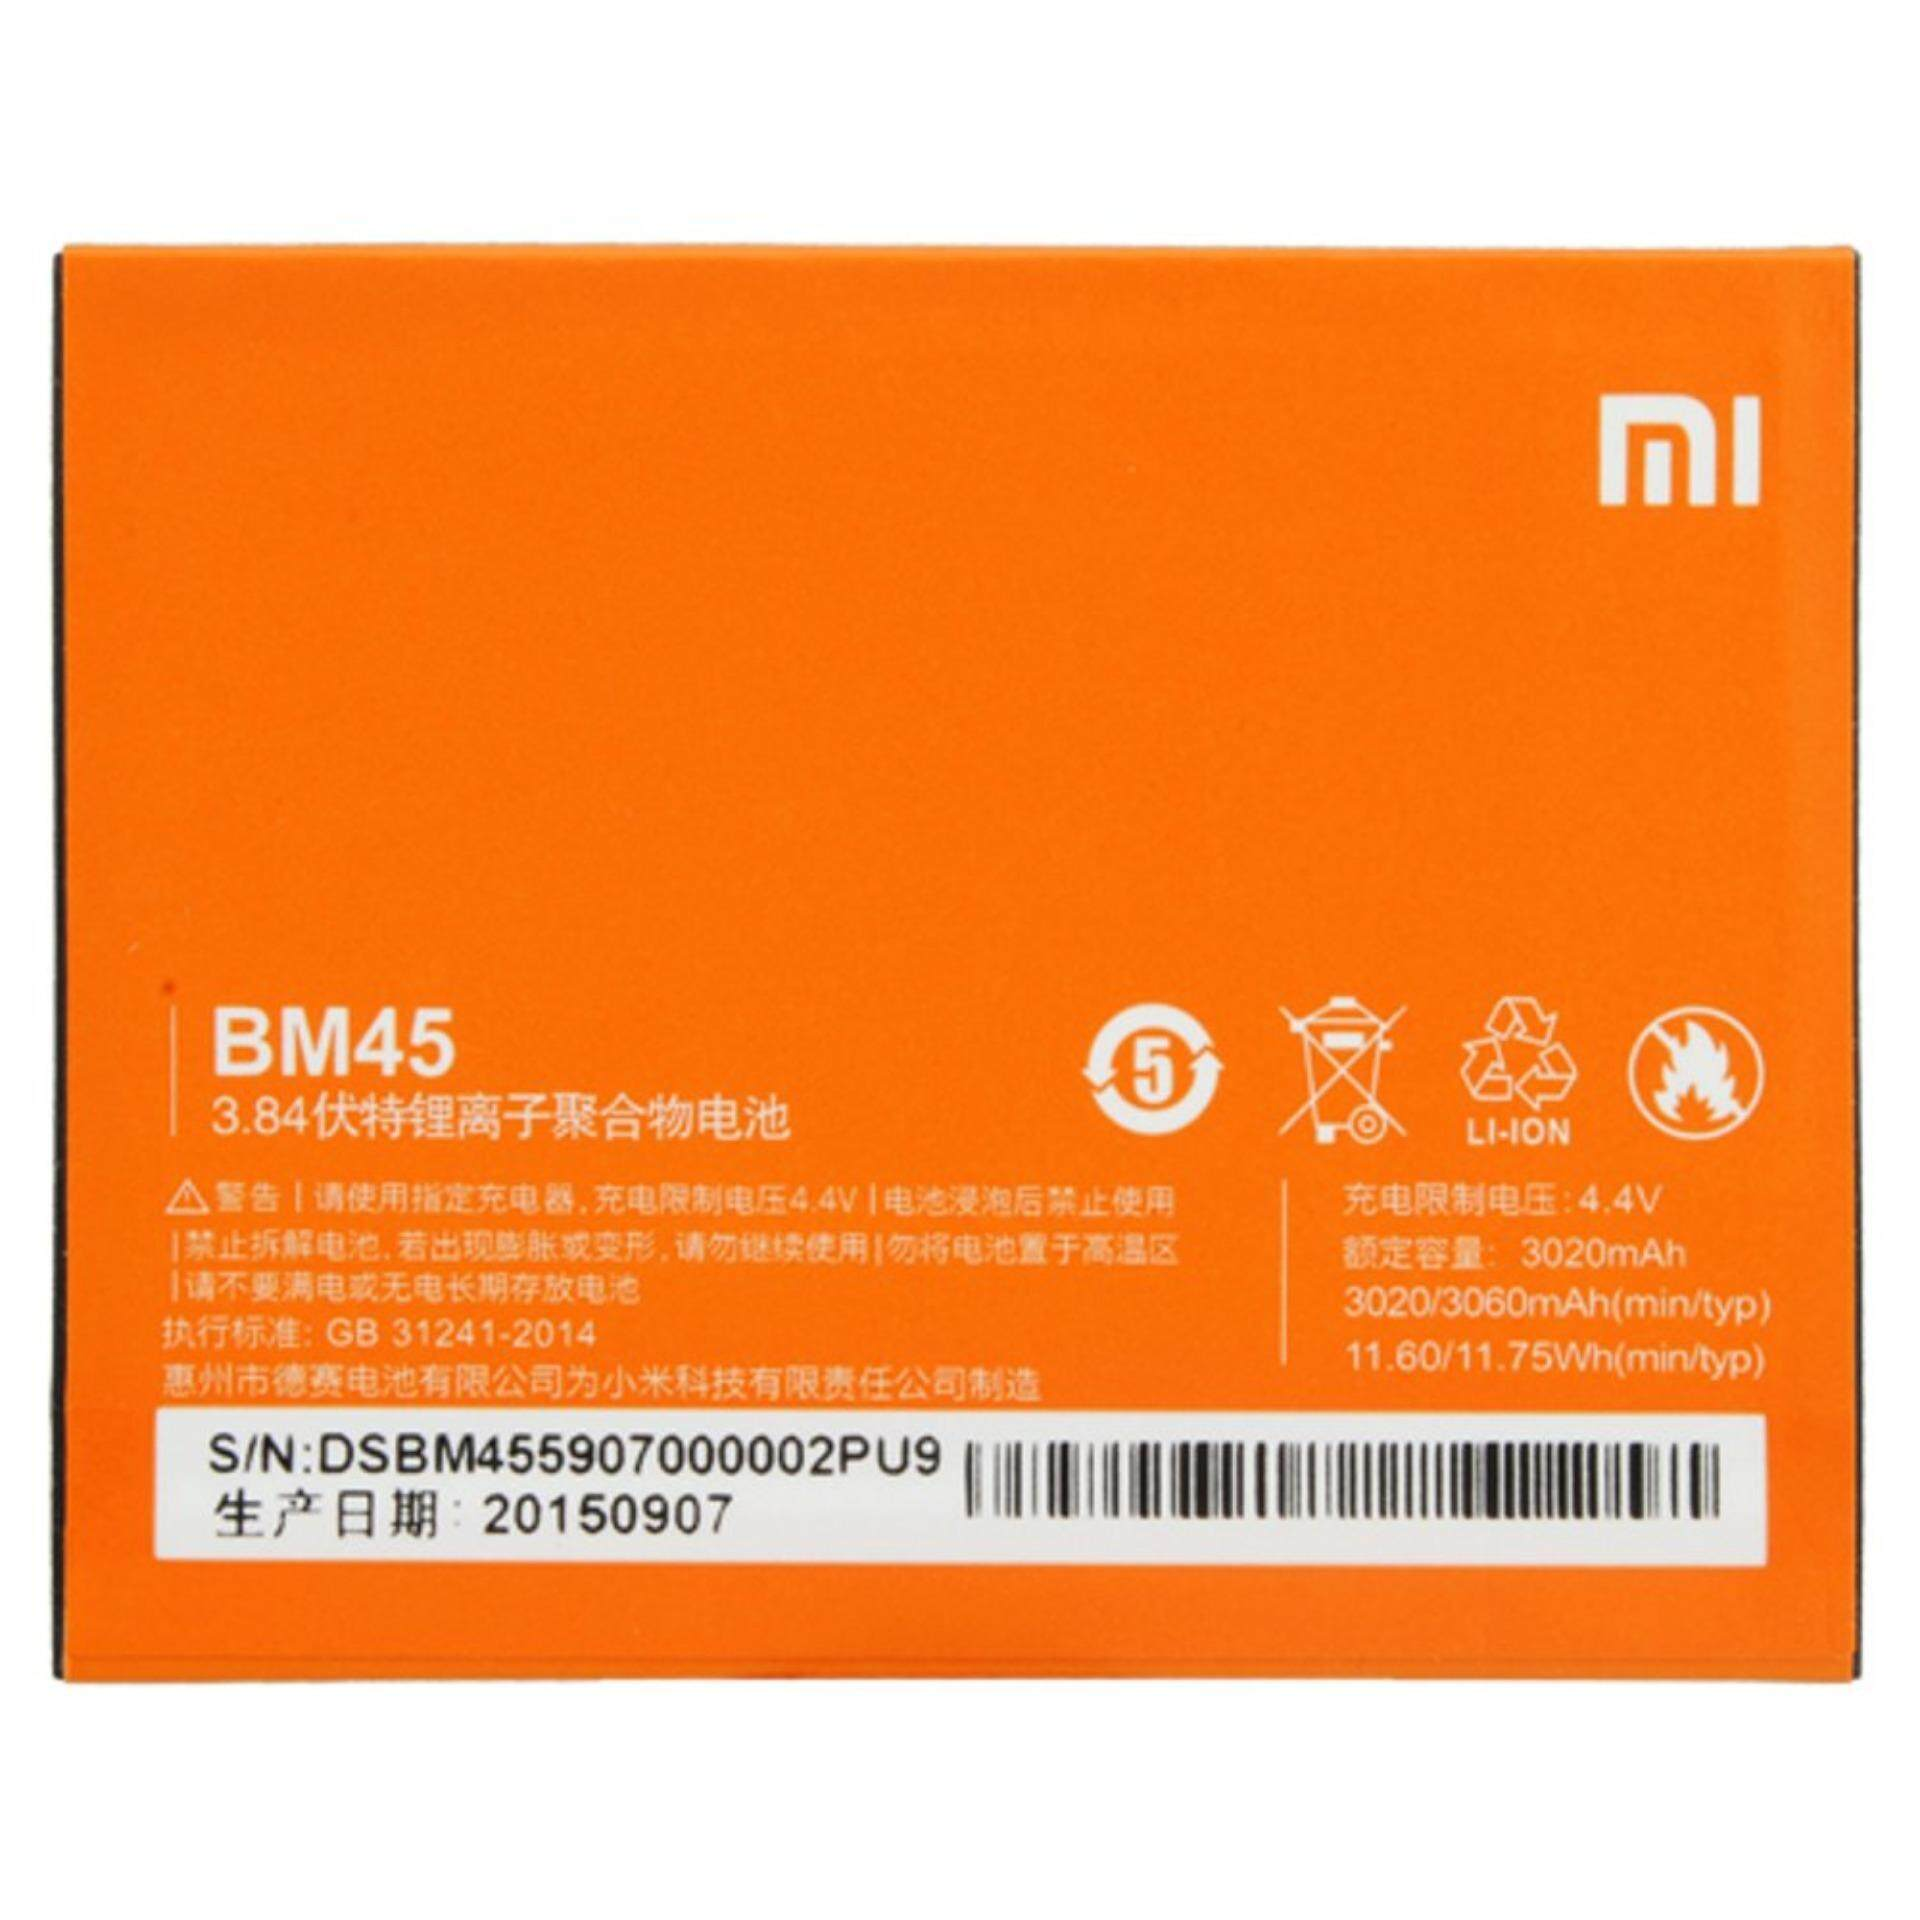 Xiaomi Phone Batteries Price In Malaysia Best Baterai Batrai Batre Battery Original Redmi4a Bn30 Redmi 4a Hong Mi Note 2 3020mah Bm45